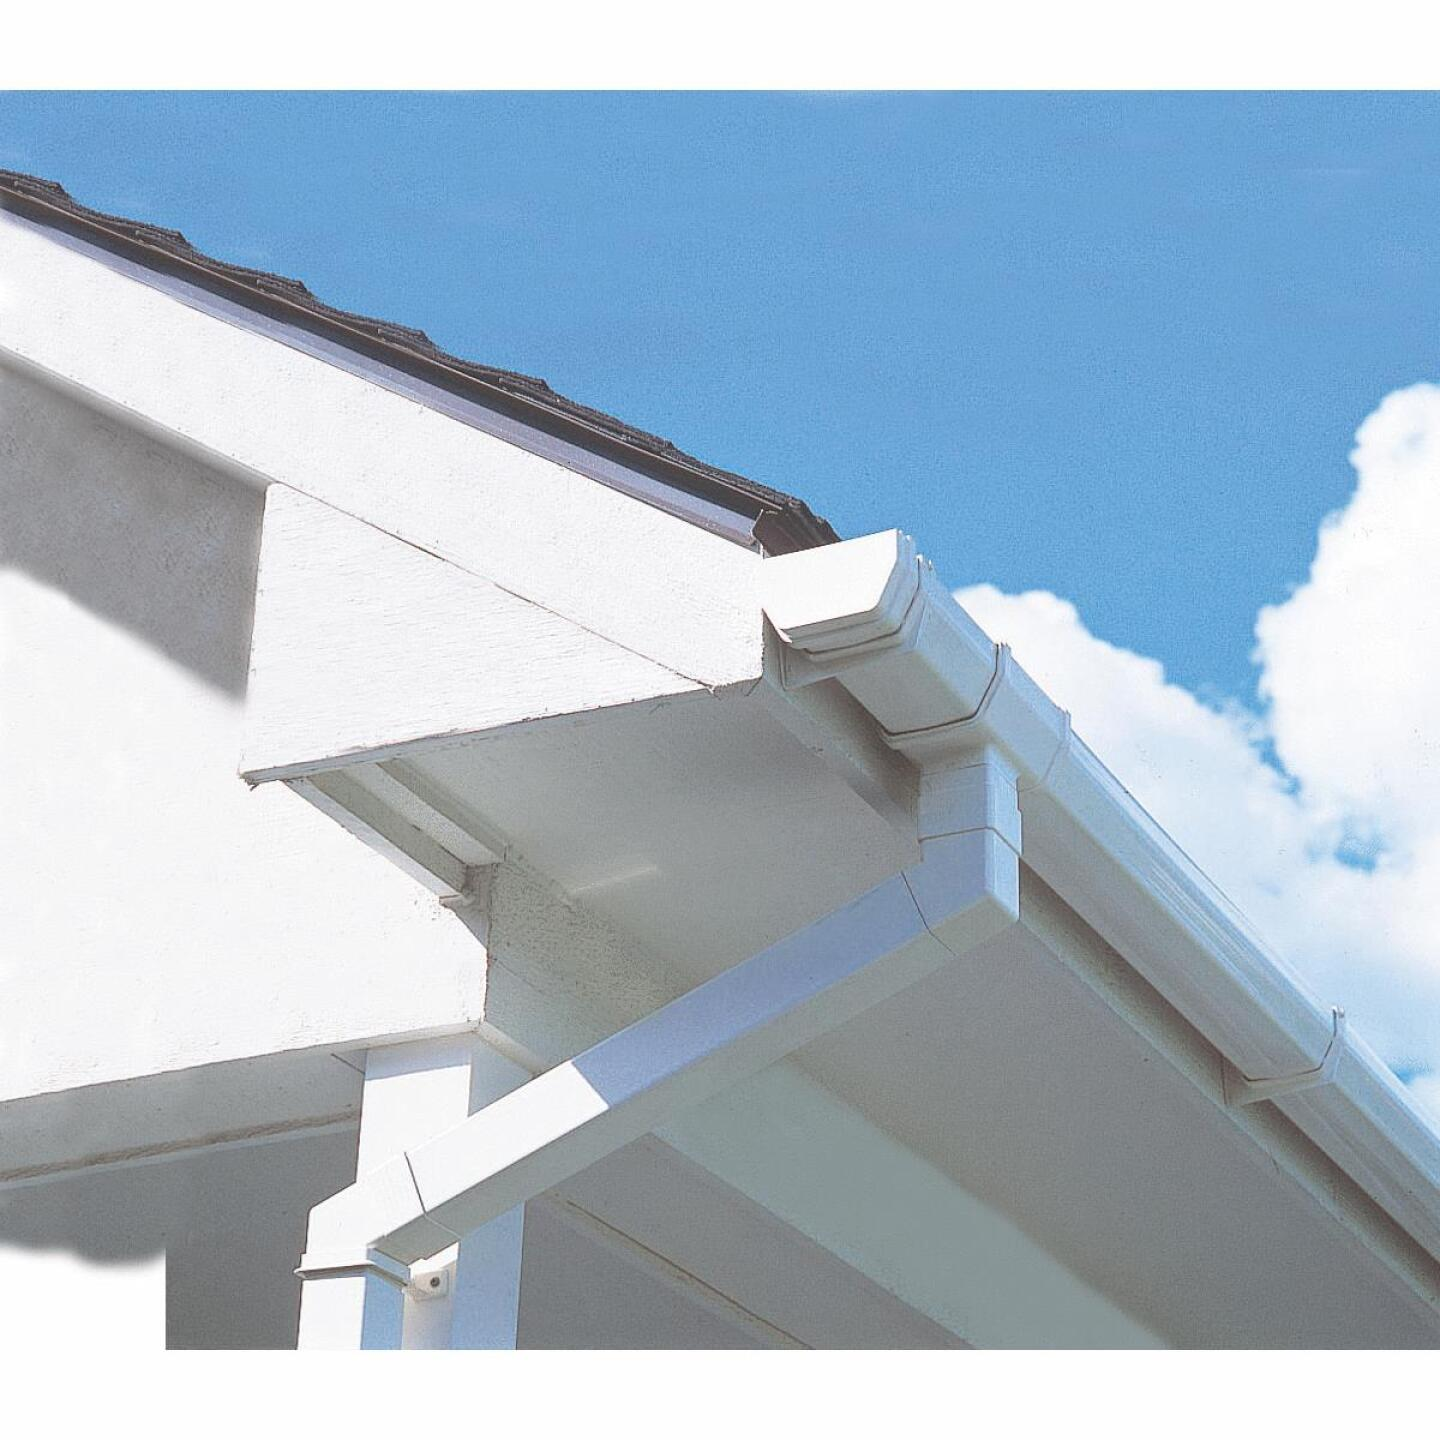 RainGo 5 In. x 10 Ft. White Vinyl Gutter Image 2